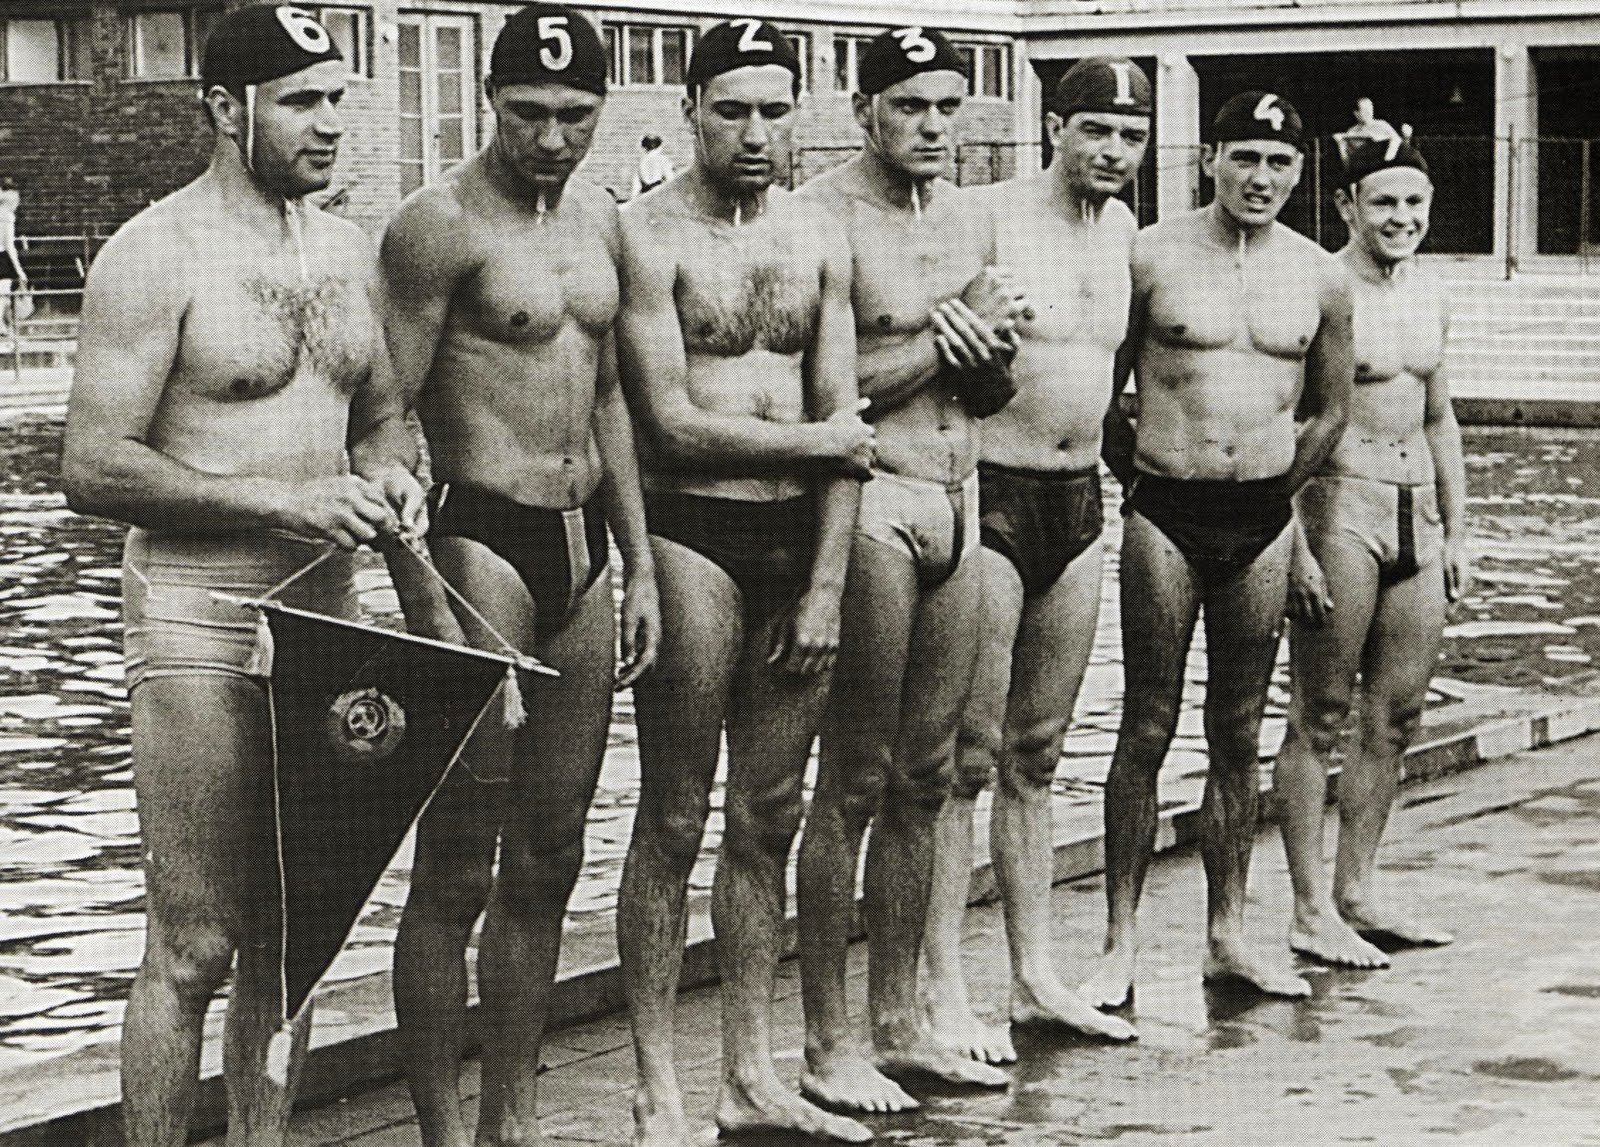 women water polo players